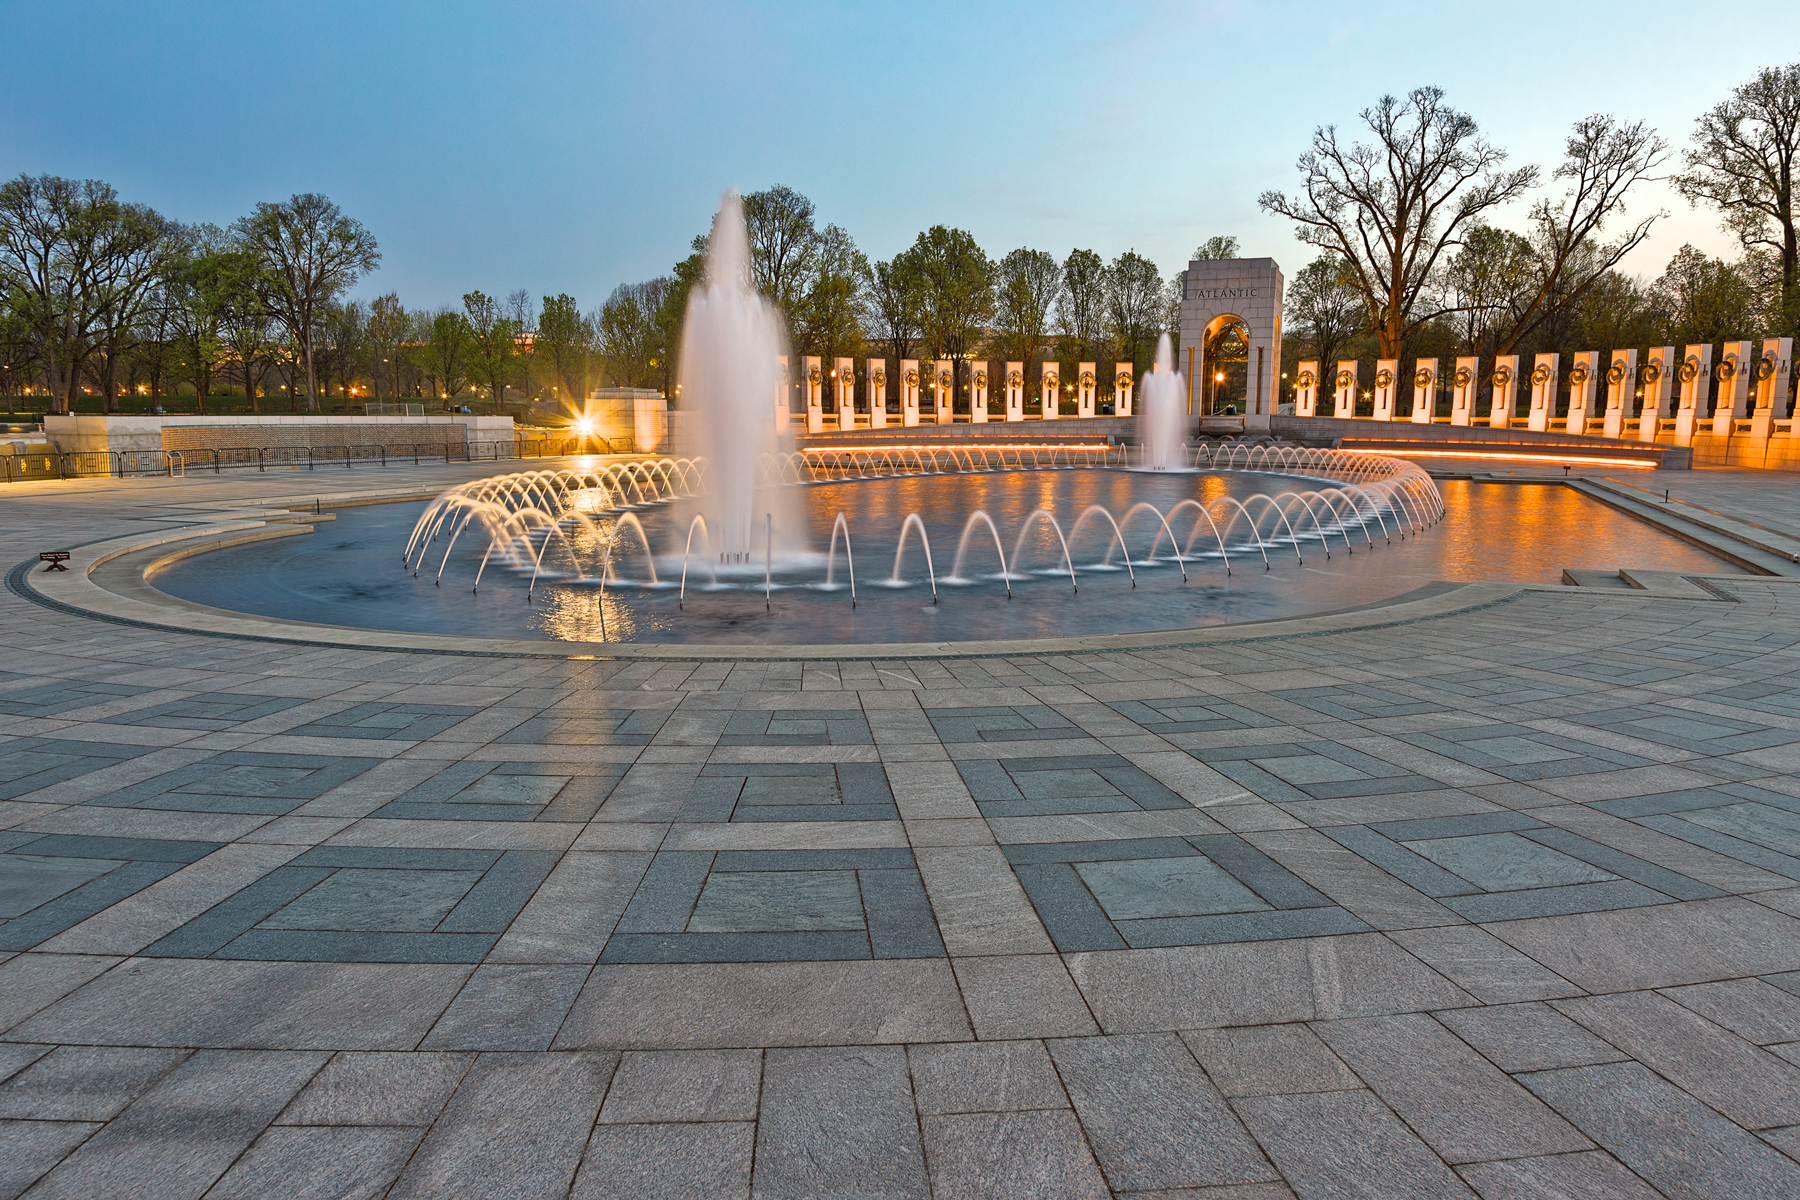 Washington dc world war ii memorial - hd photo